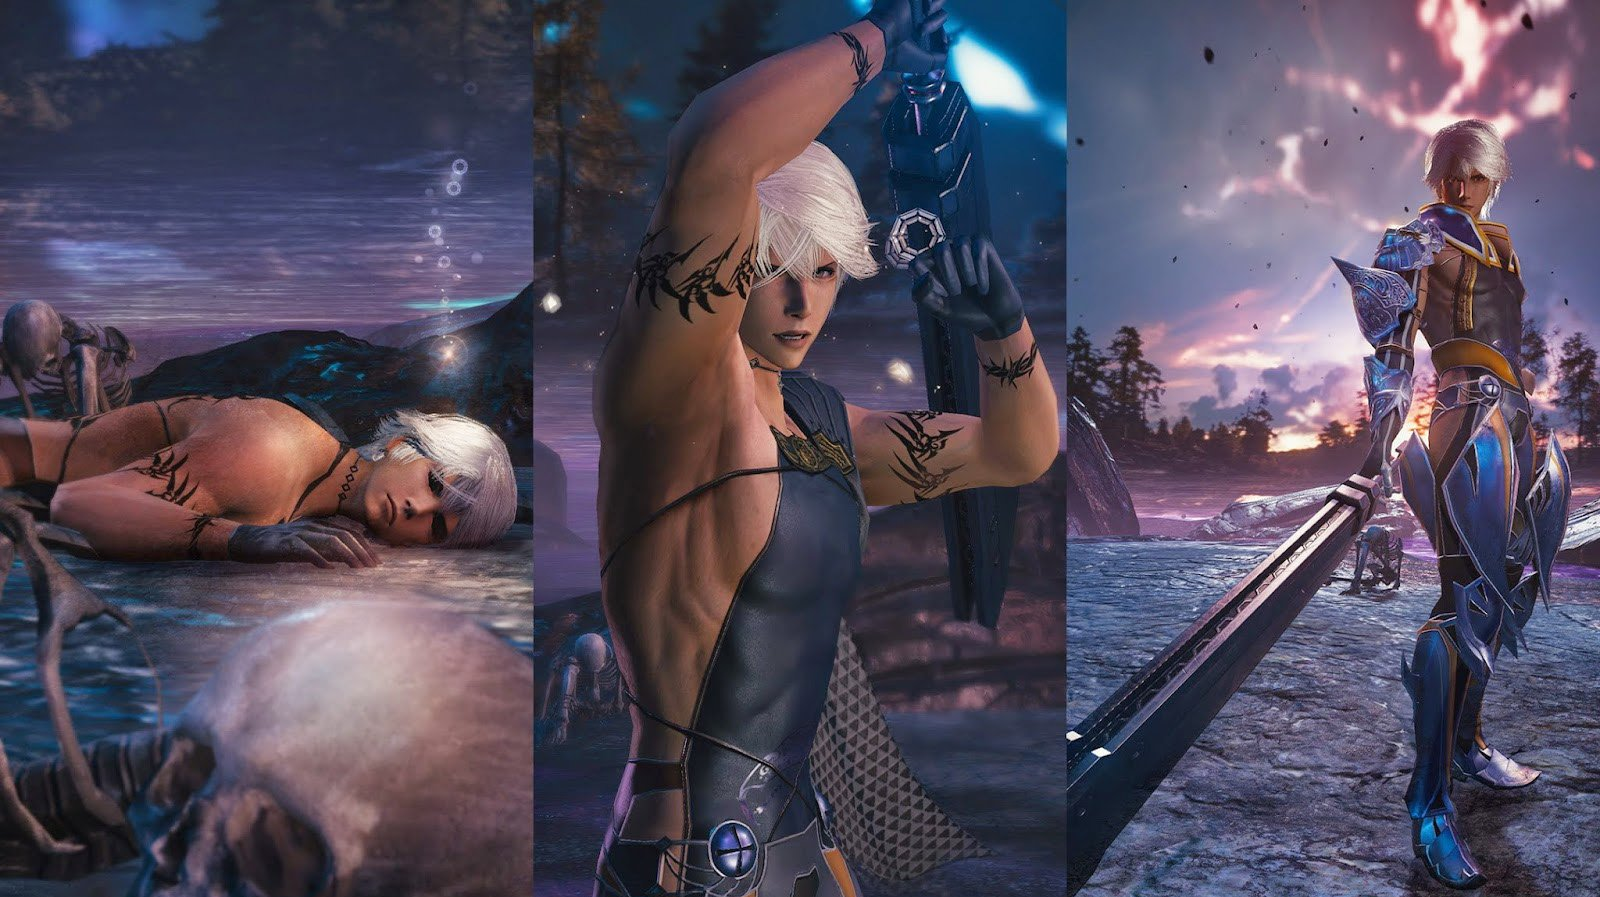 Final fantasy sex picture naked scenes